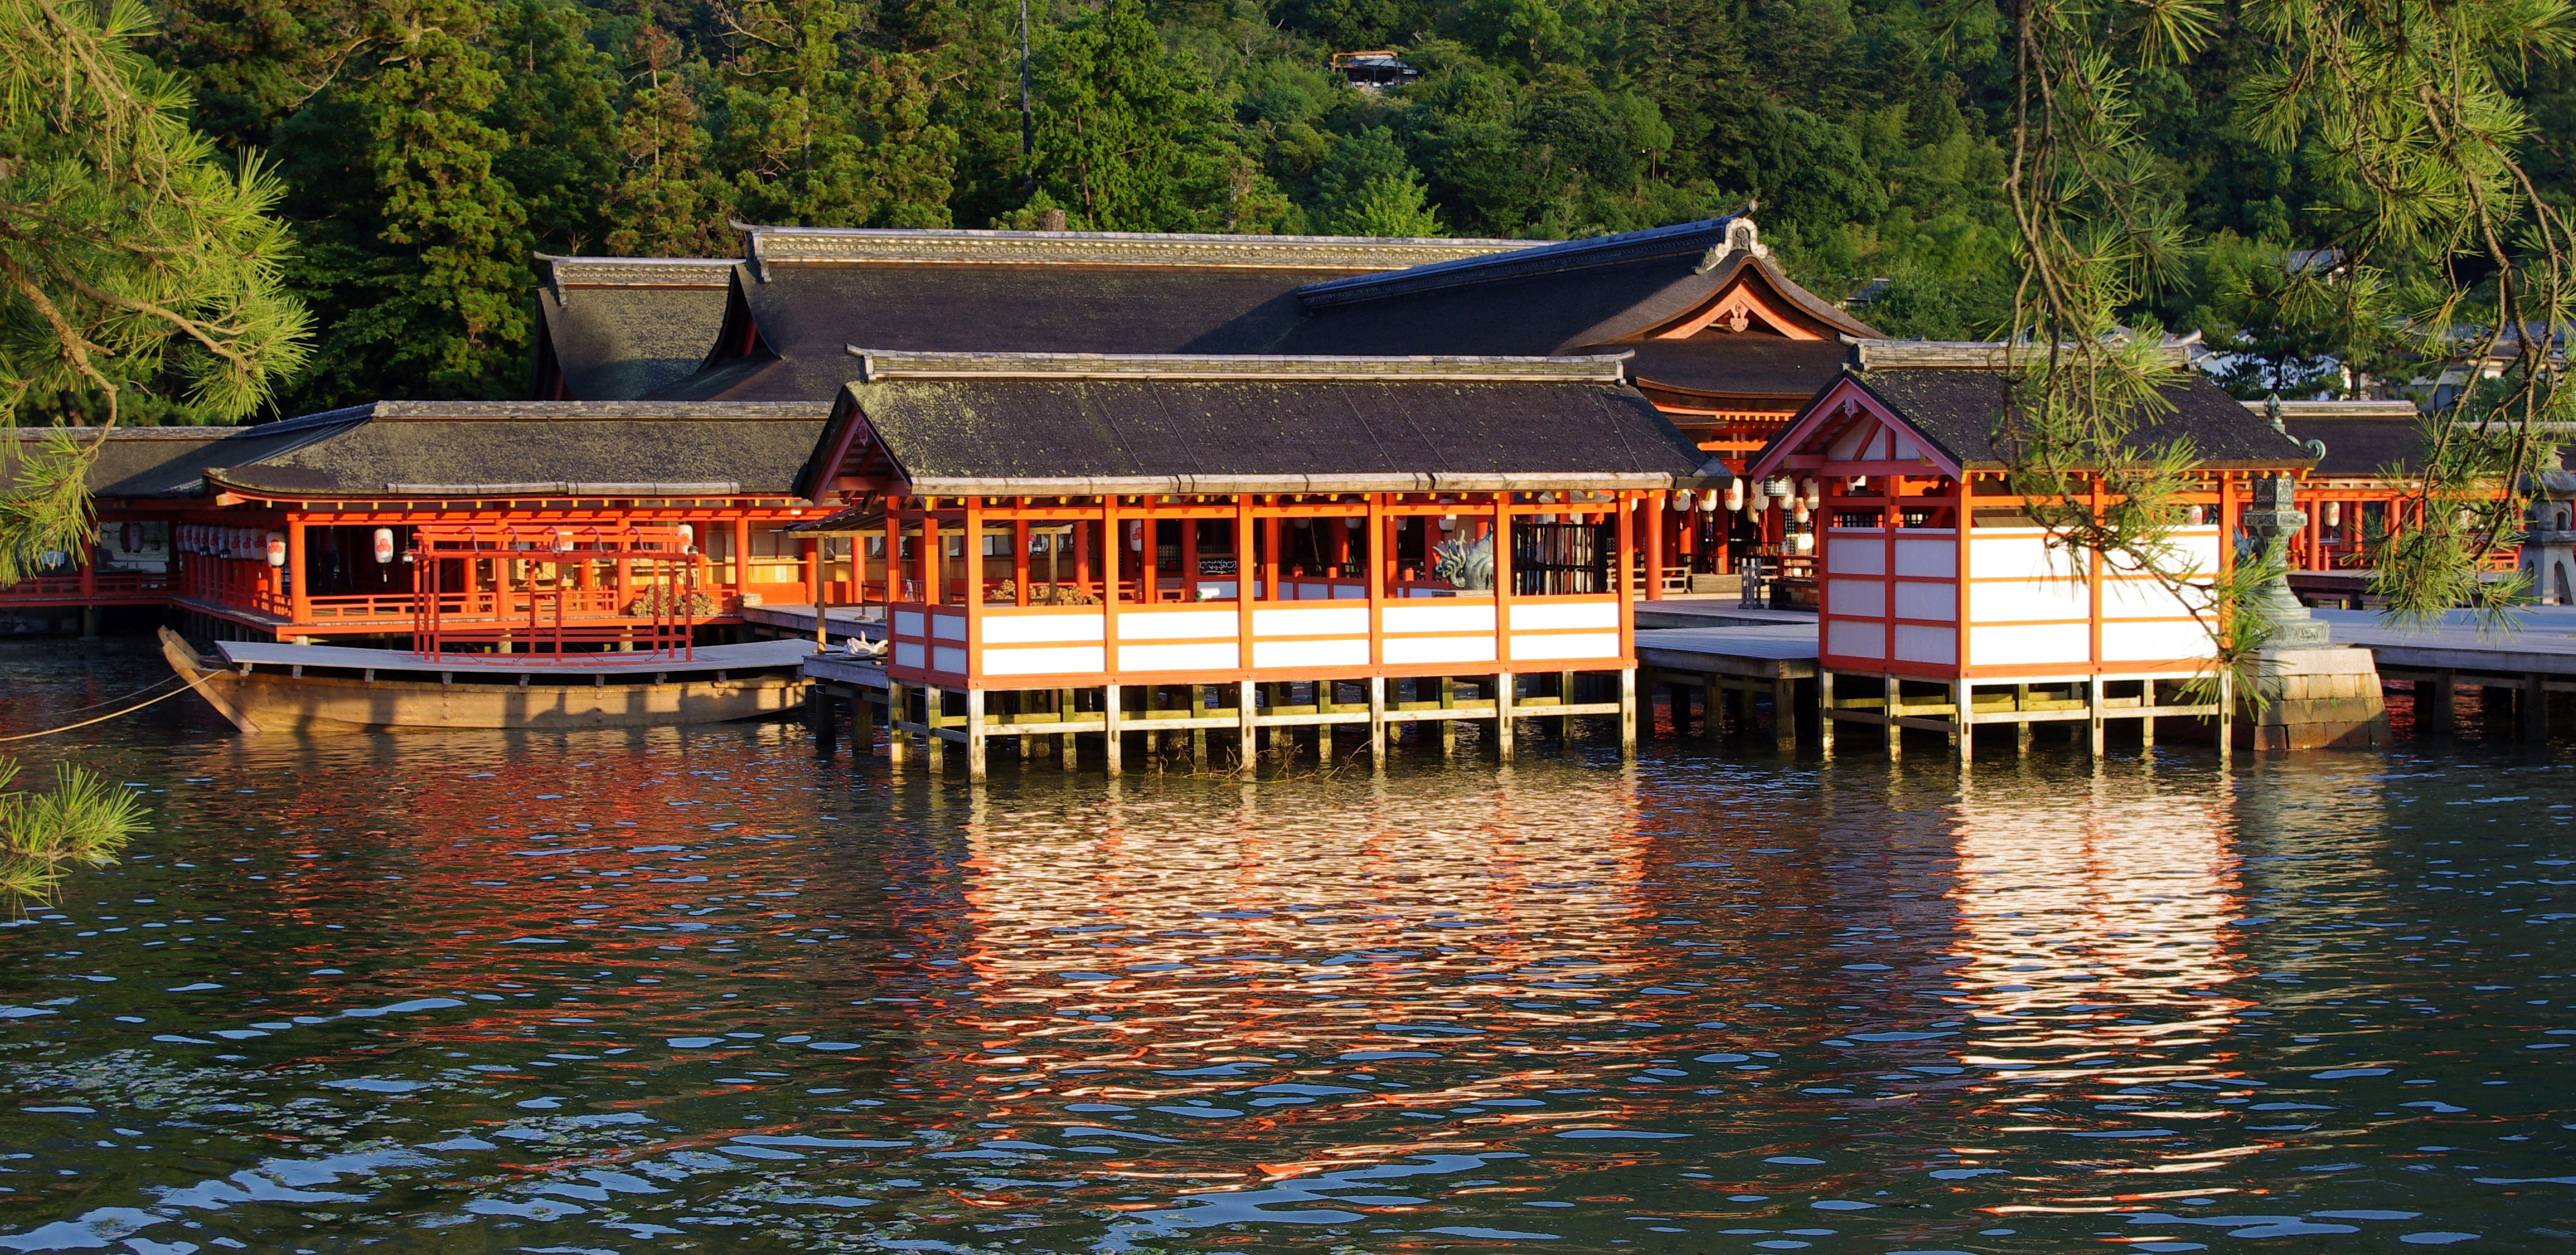 https://upload.wikimedia.org/wikipedia/commons/f/fa/20100723_Miyajima_Itsukushima_5189.jpg